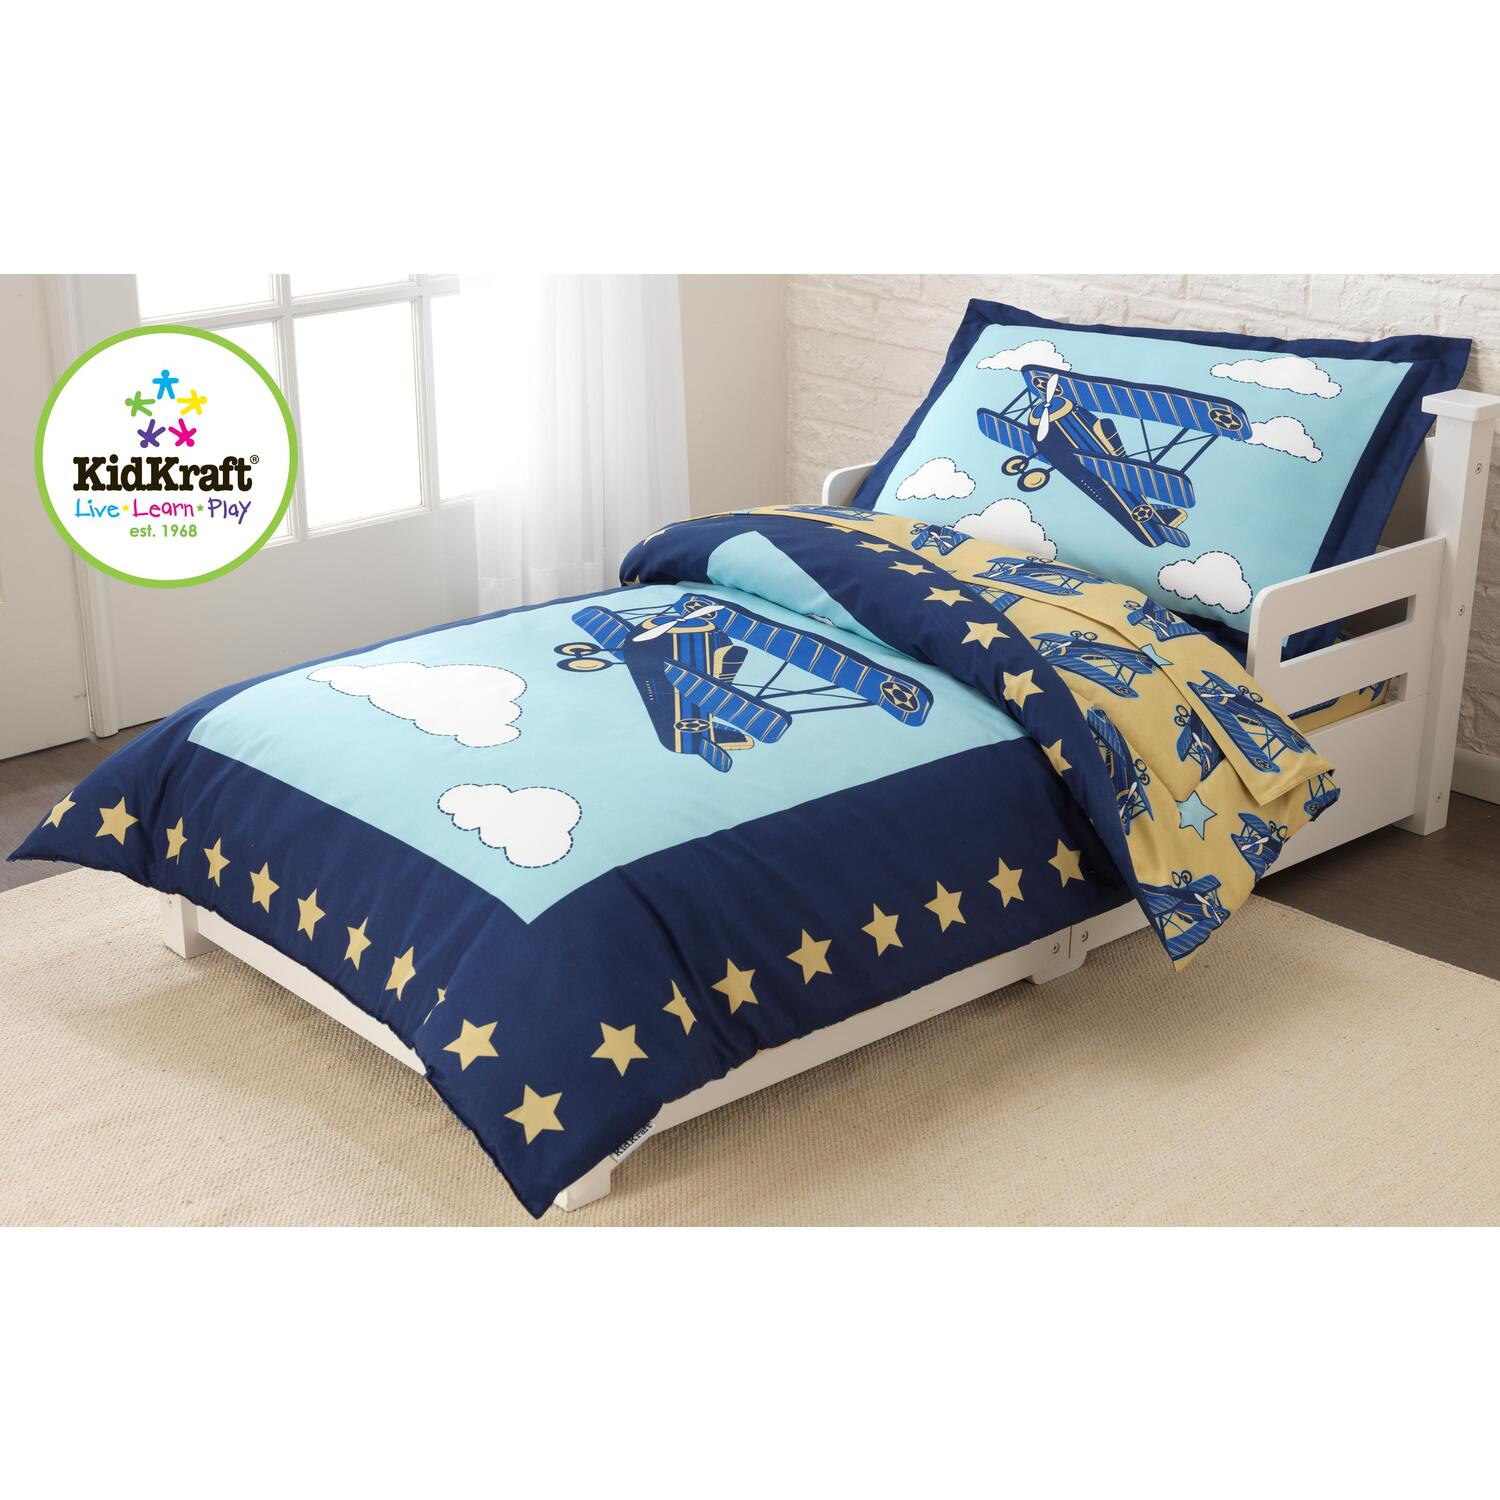 charming Kidkraft Airplane Toddler Bed Part - 15: Airplane Toddler Bedding Set. New. by KidKraft